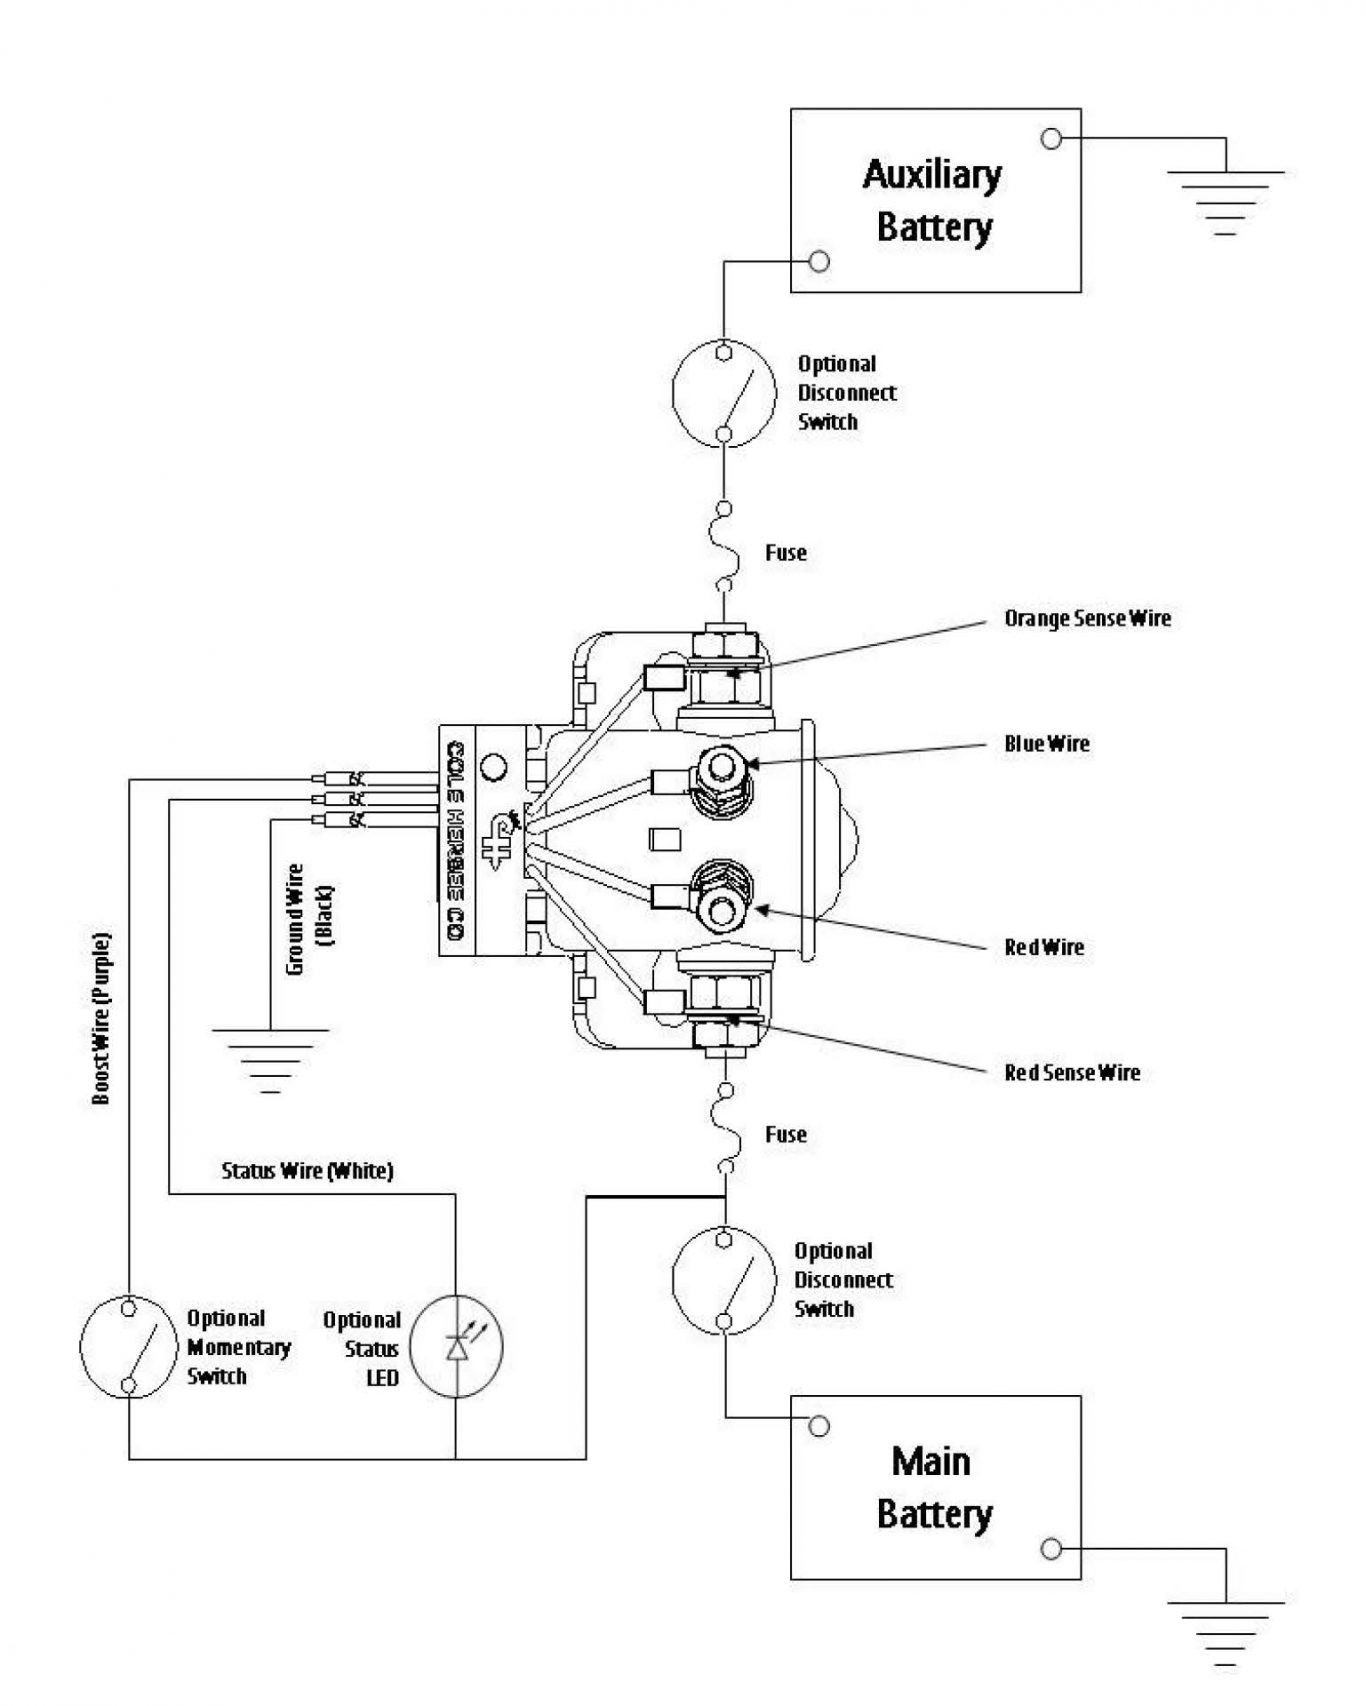 hight resolution of warn a2000 winch wiring diagram wiring diagram for warn winch refrence elegant warn winch wiring